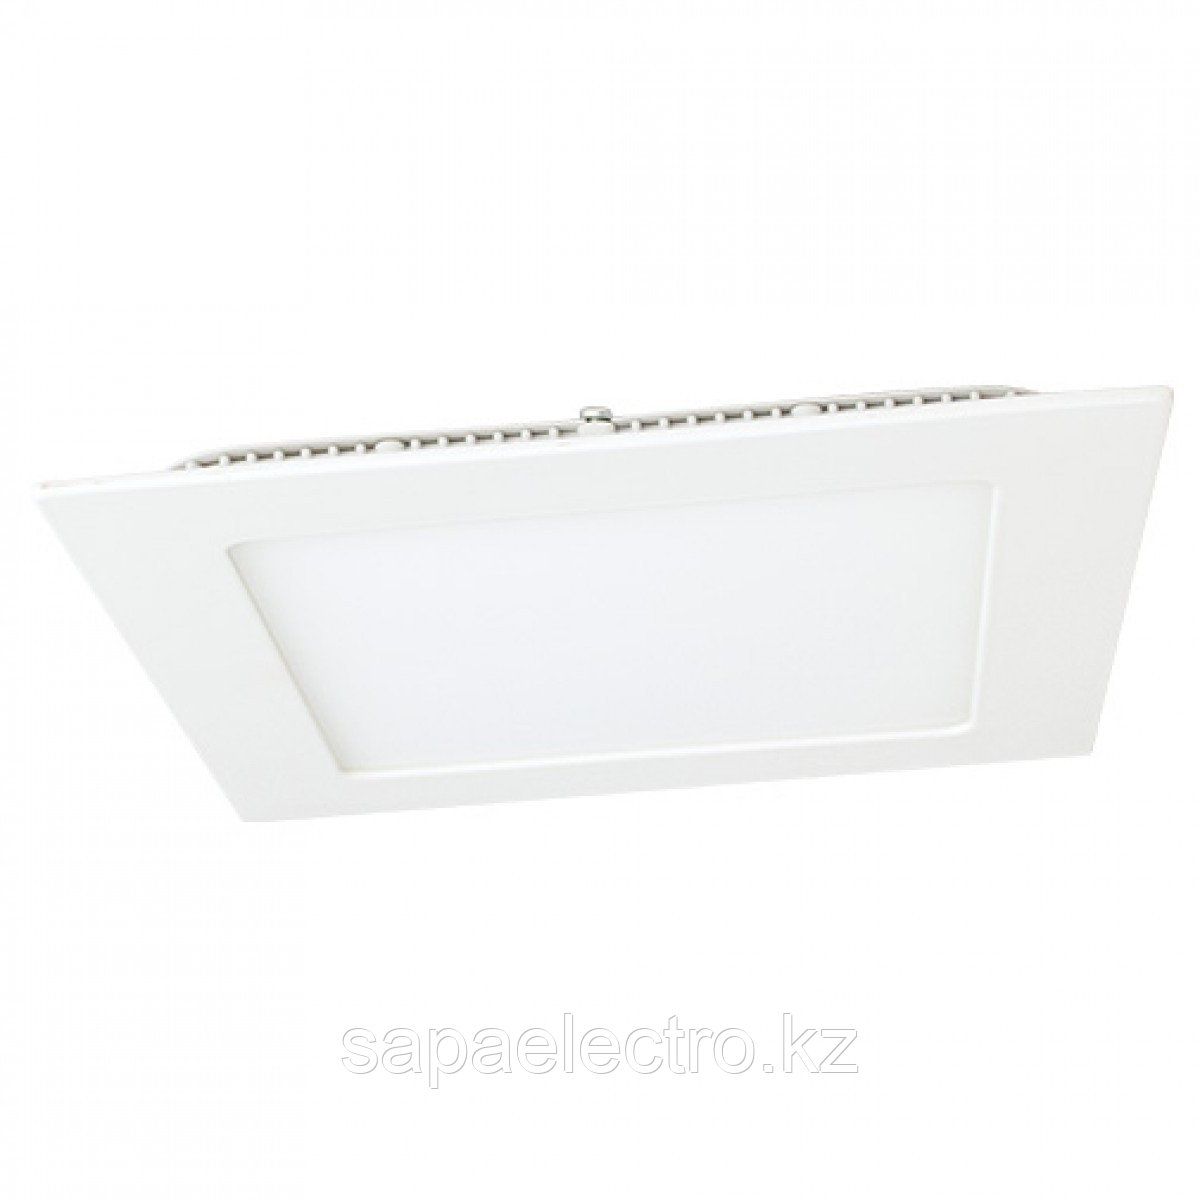 Свет-к DL LED KVADRO PANEL 18W 6000K (TS) 20шт